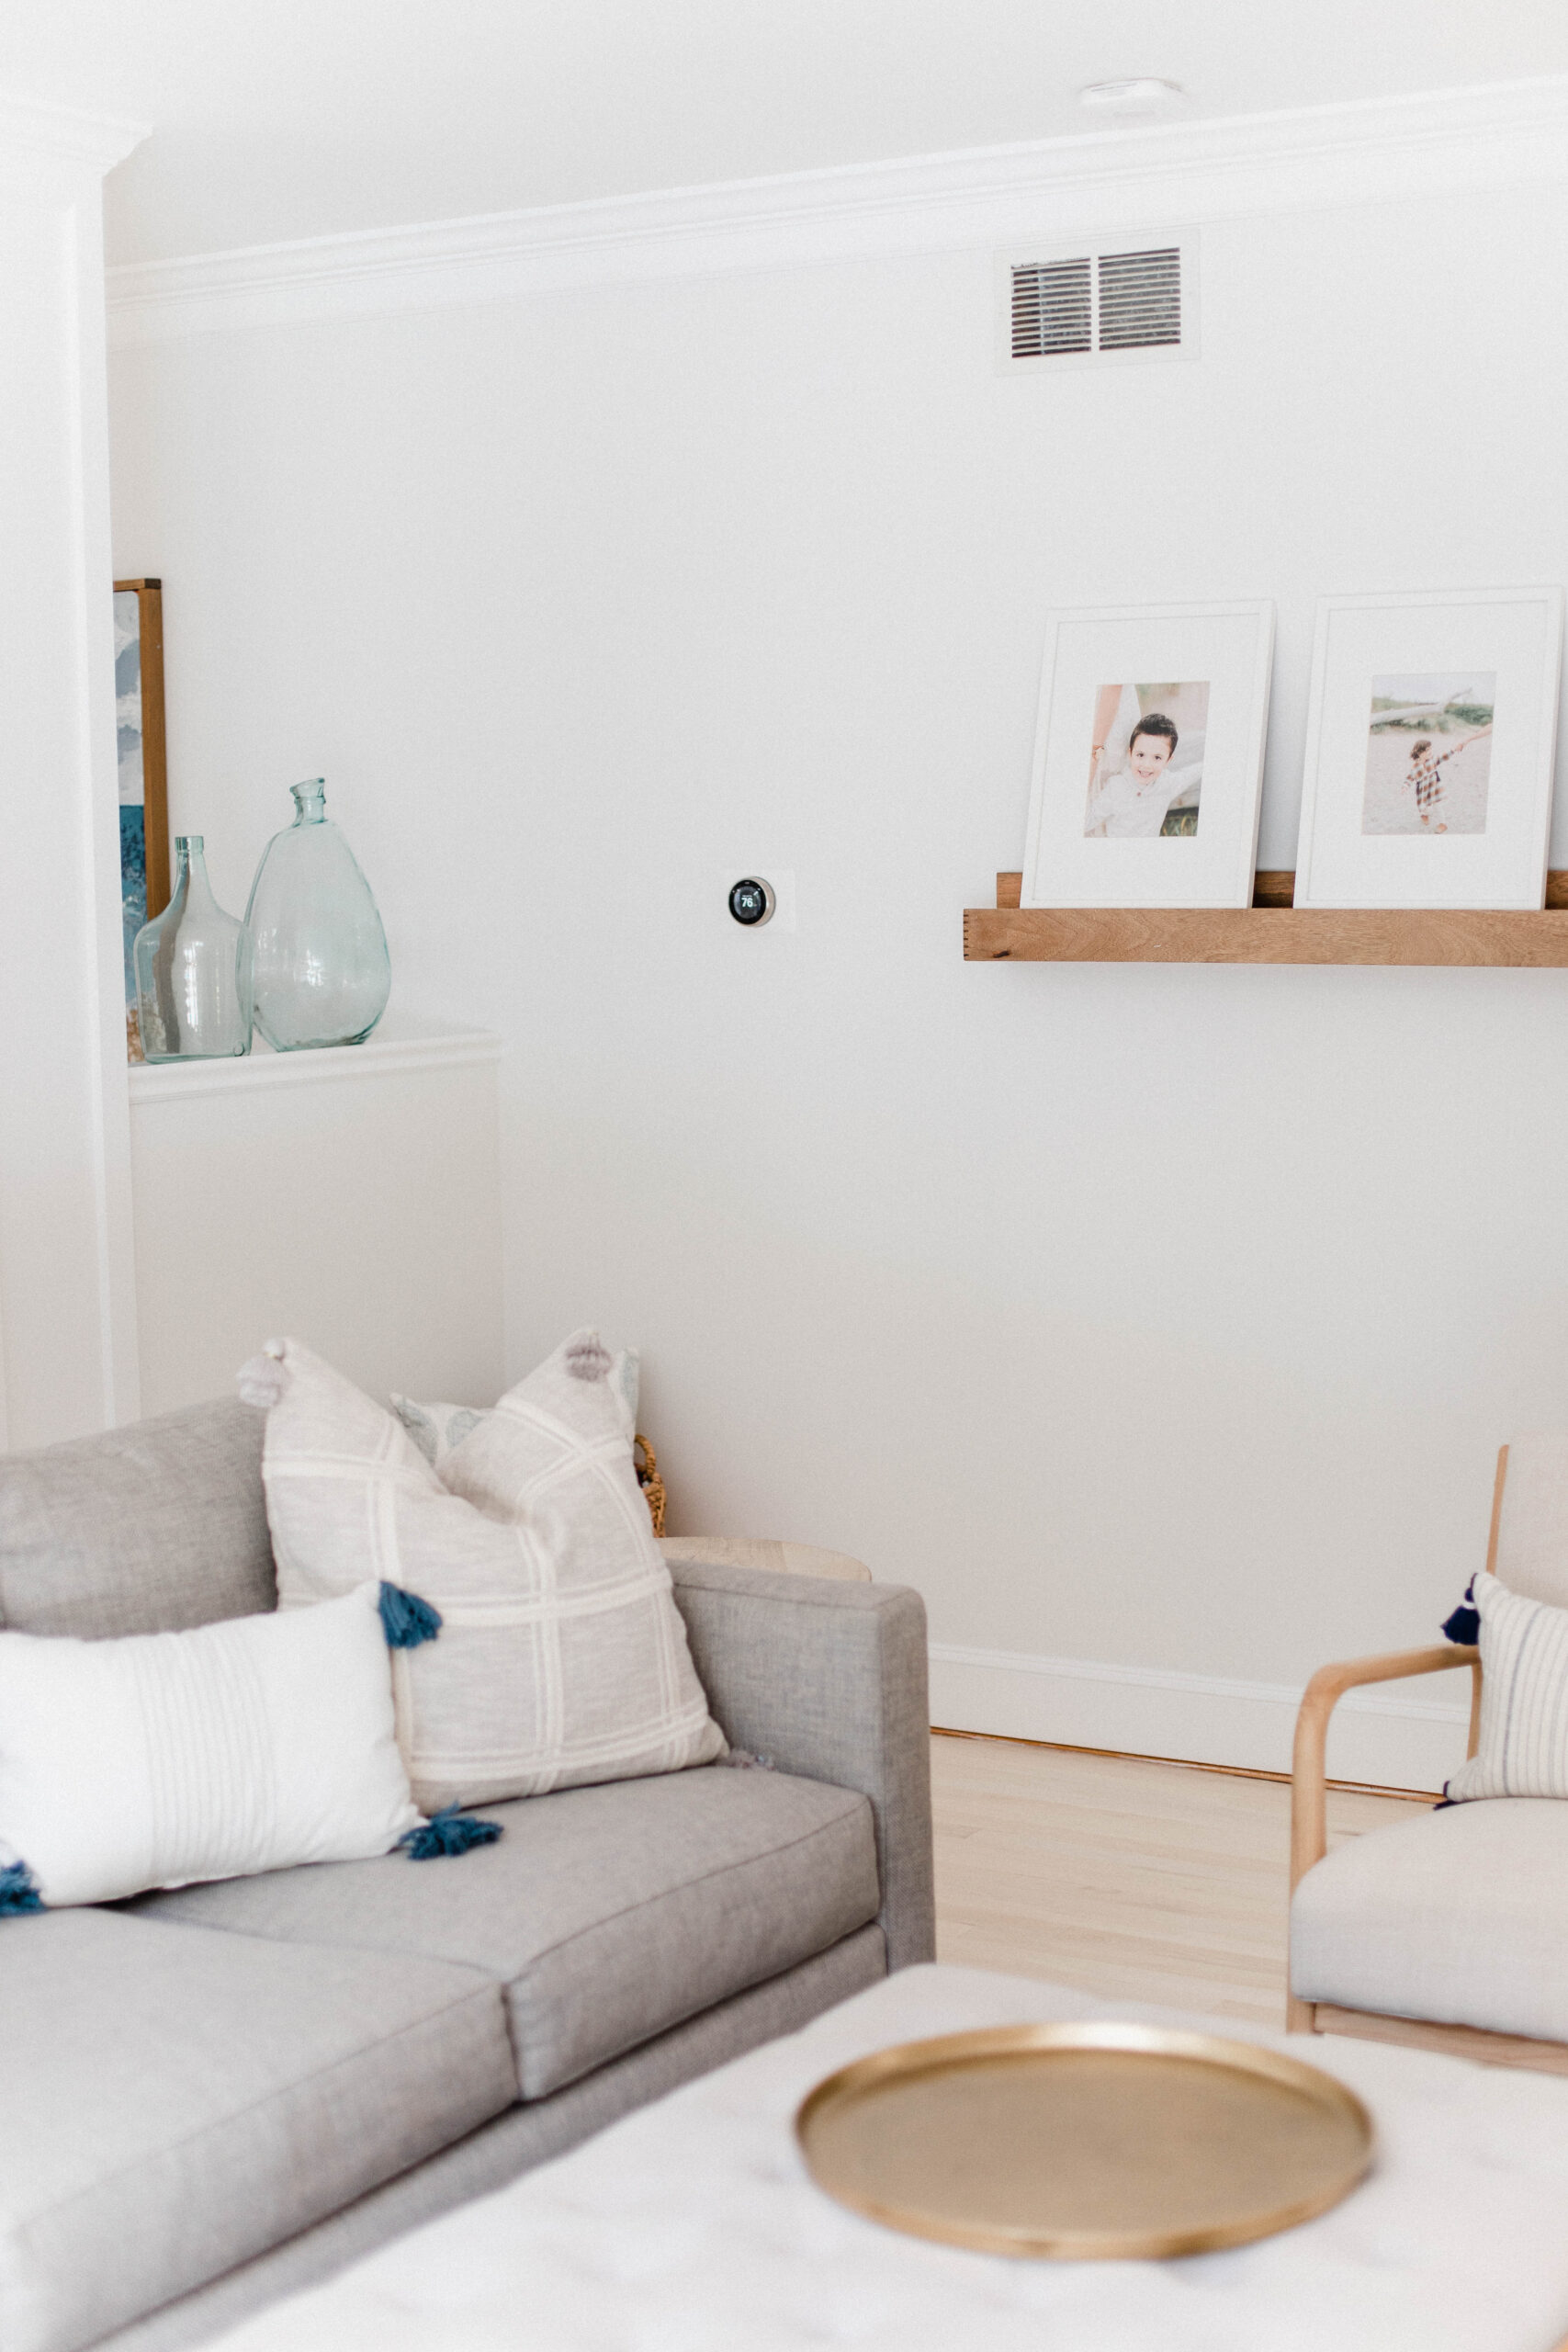 Connecticut life and style blogger Lauren McBride shares smart home additions to her new home, featuring Nest and Ring products.